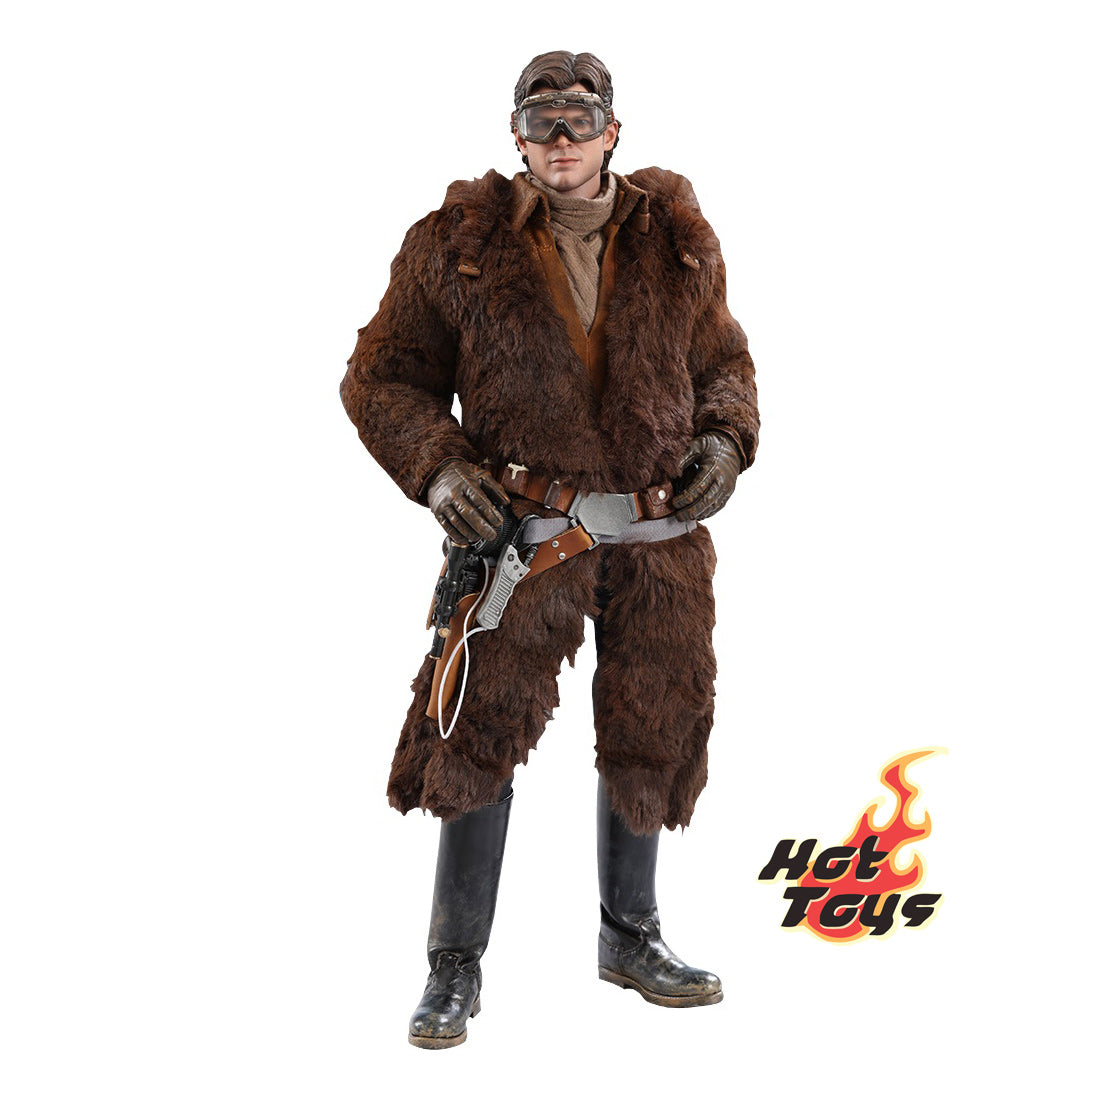 Han Solo Deluxe Version Sixth Scale Figure